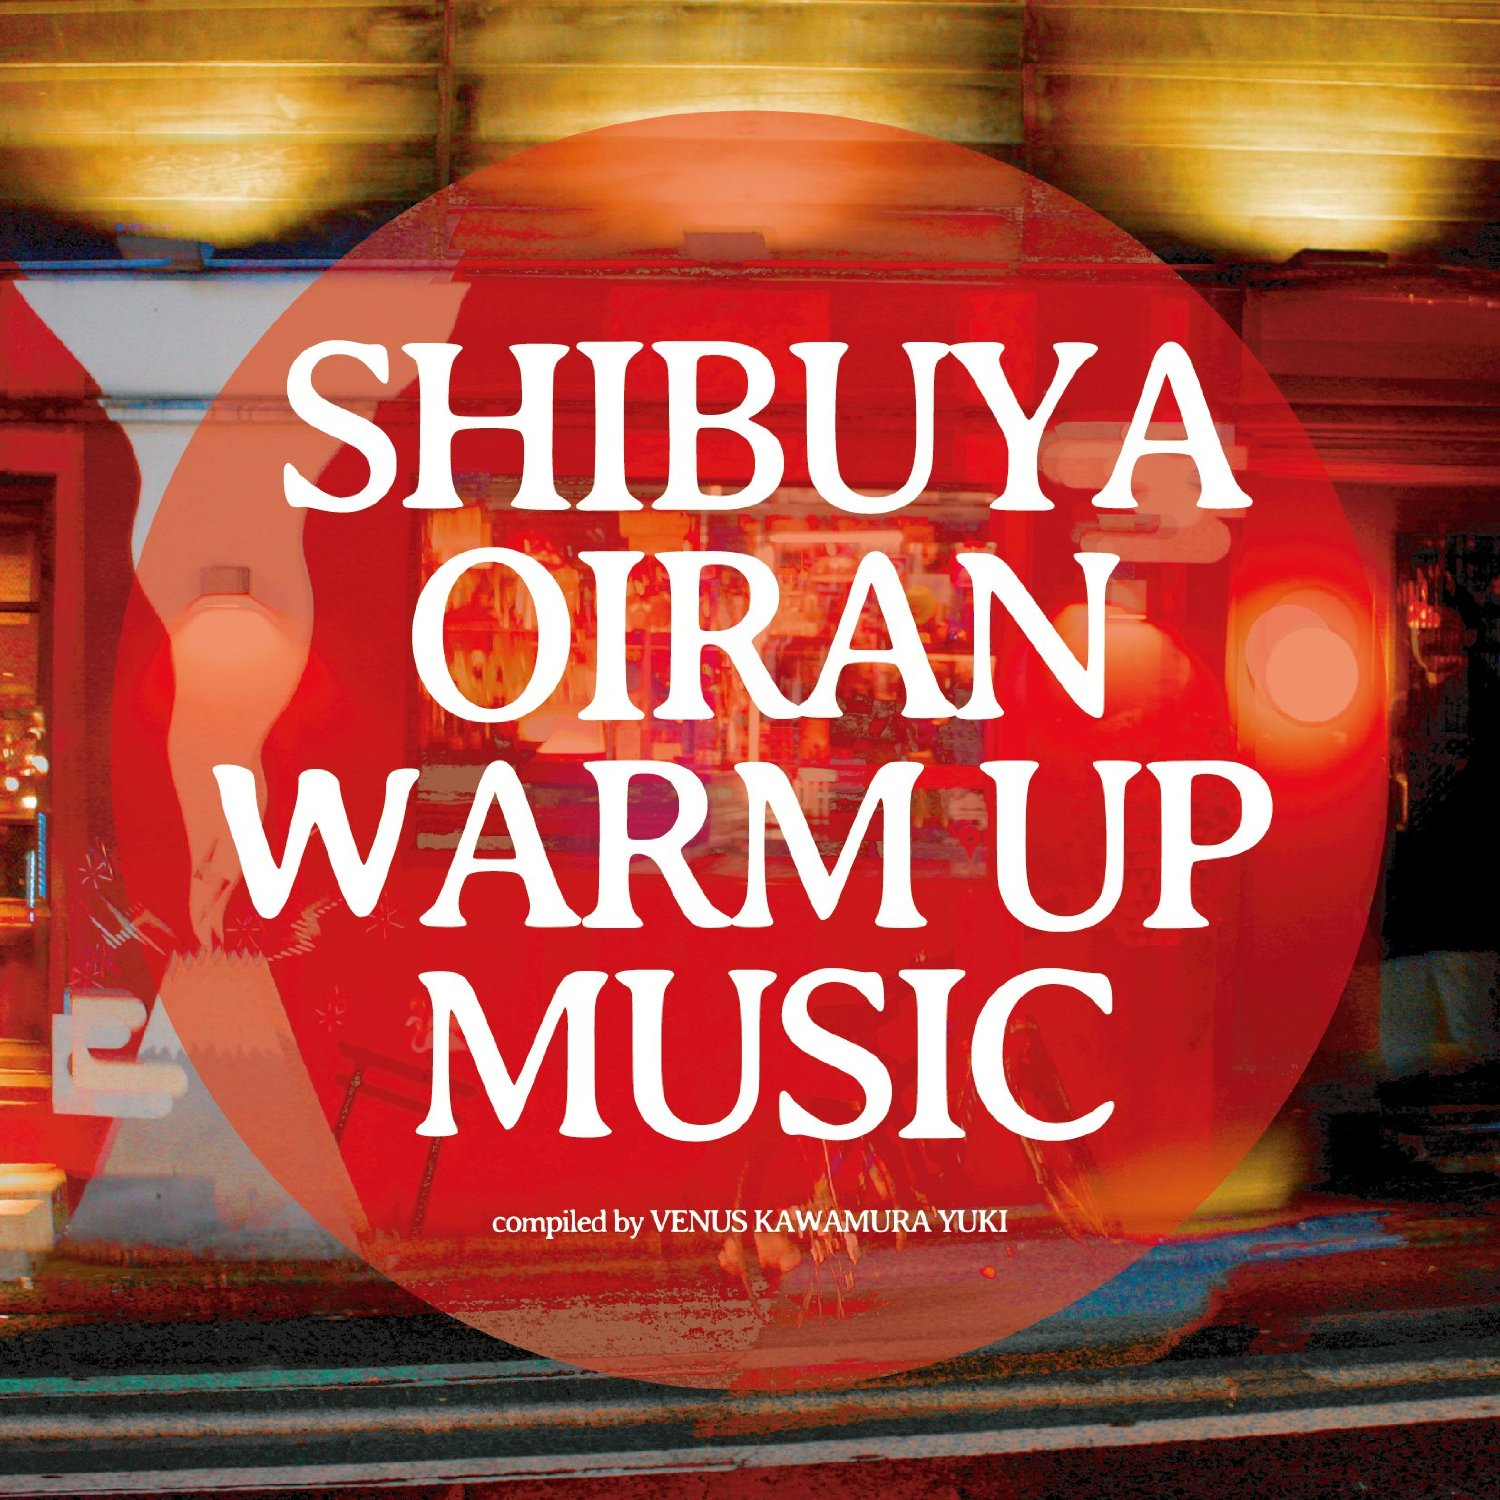 SHIBUYA Oiran Warm Up Music Compilation